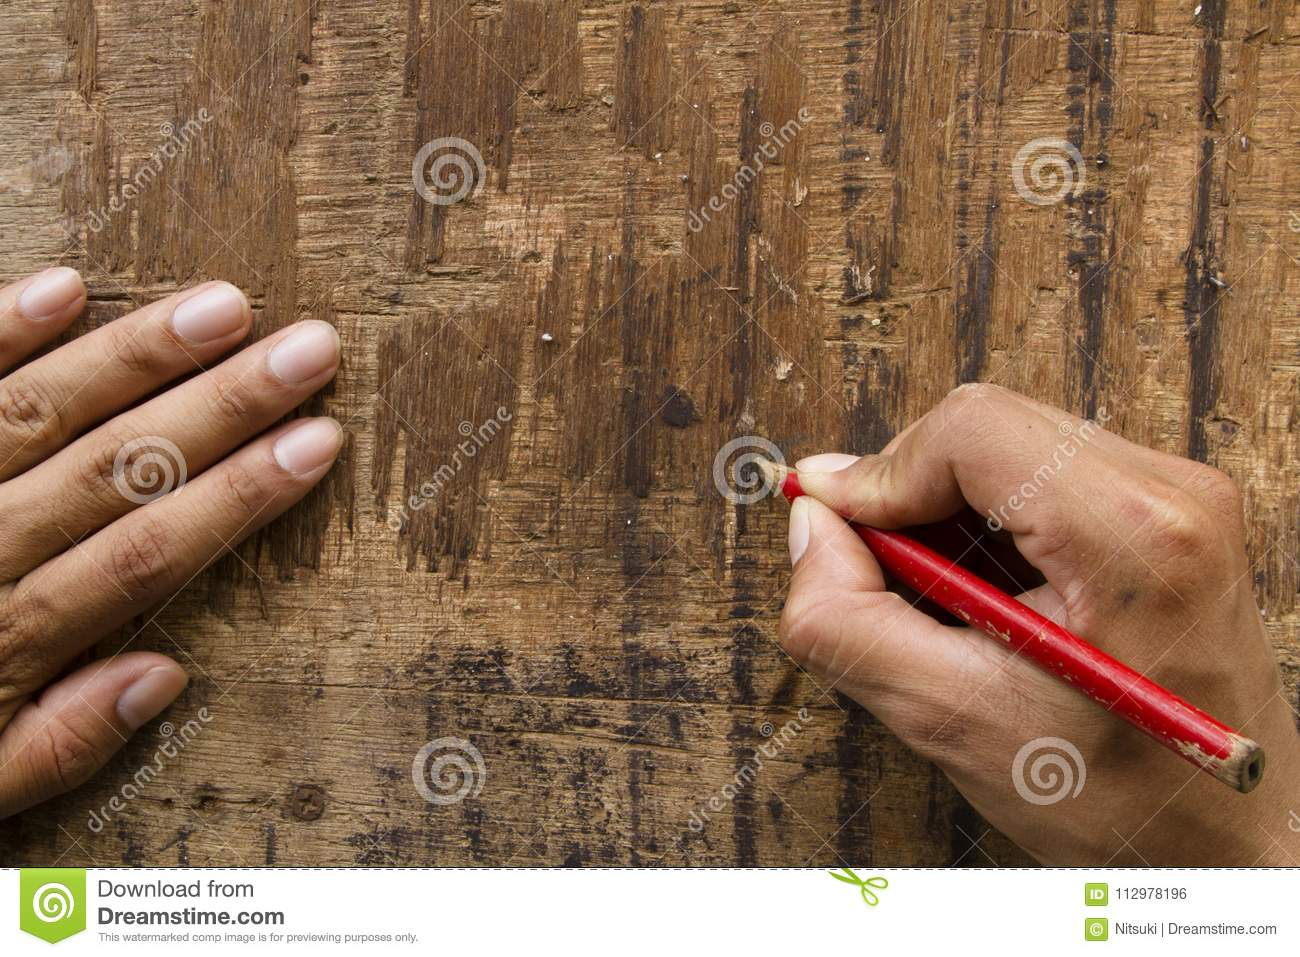 Hand writing on wood plank design furniture concept